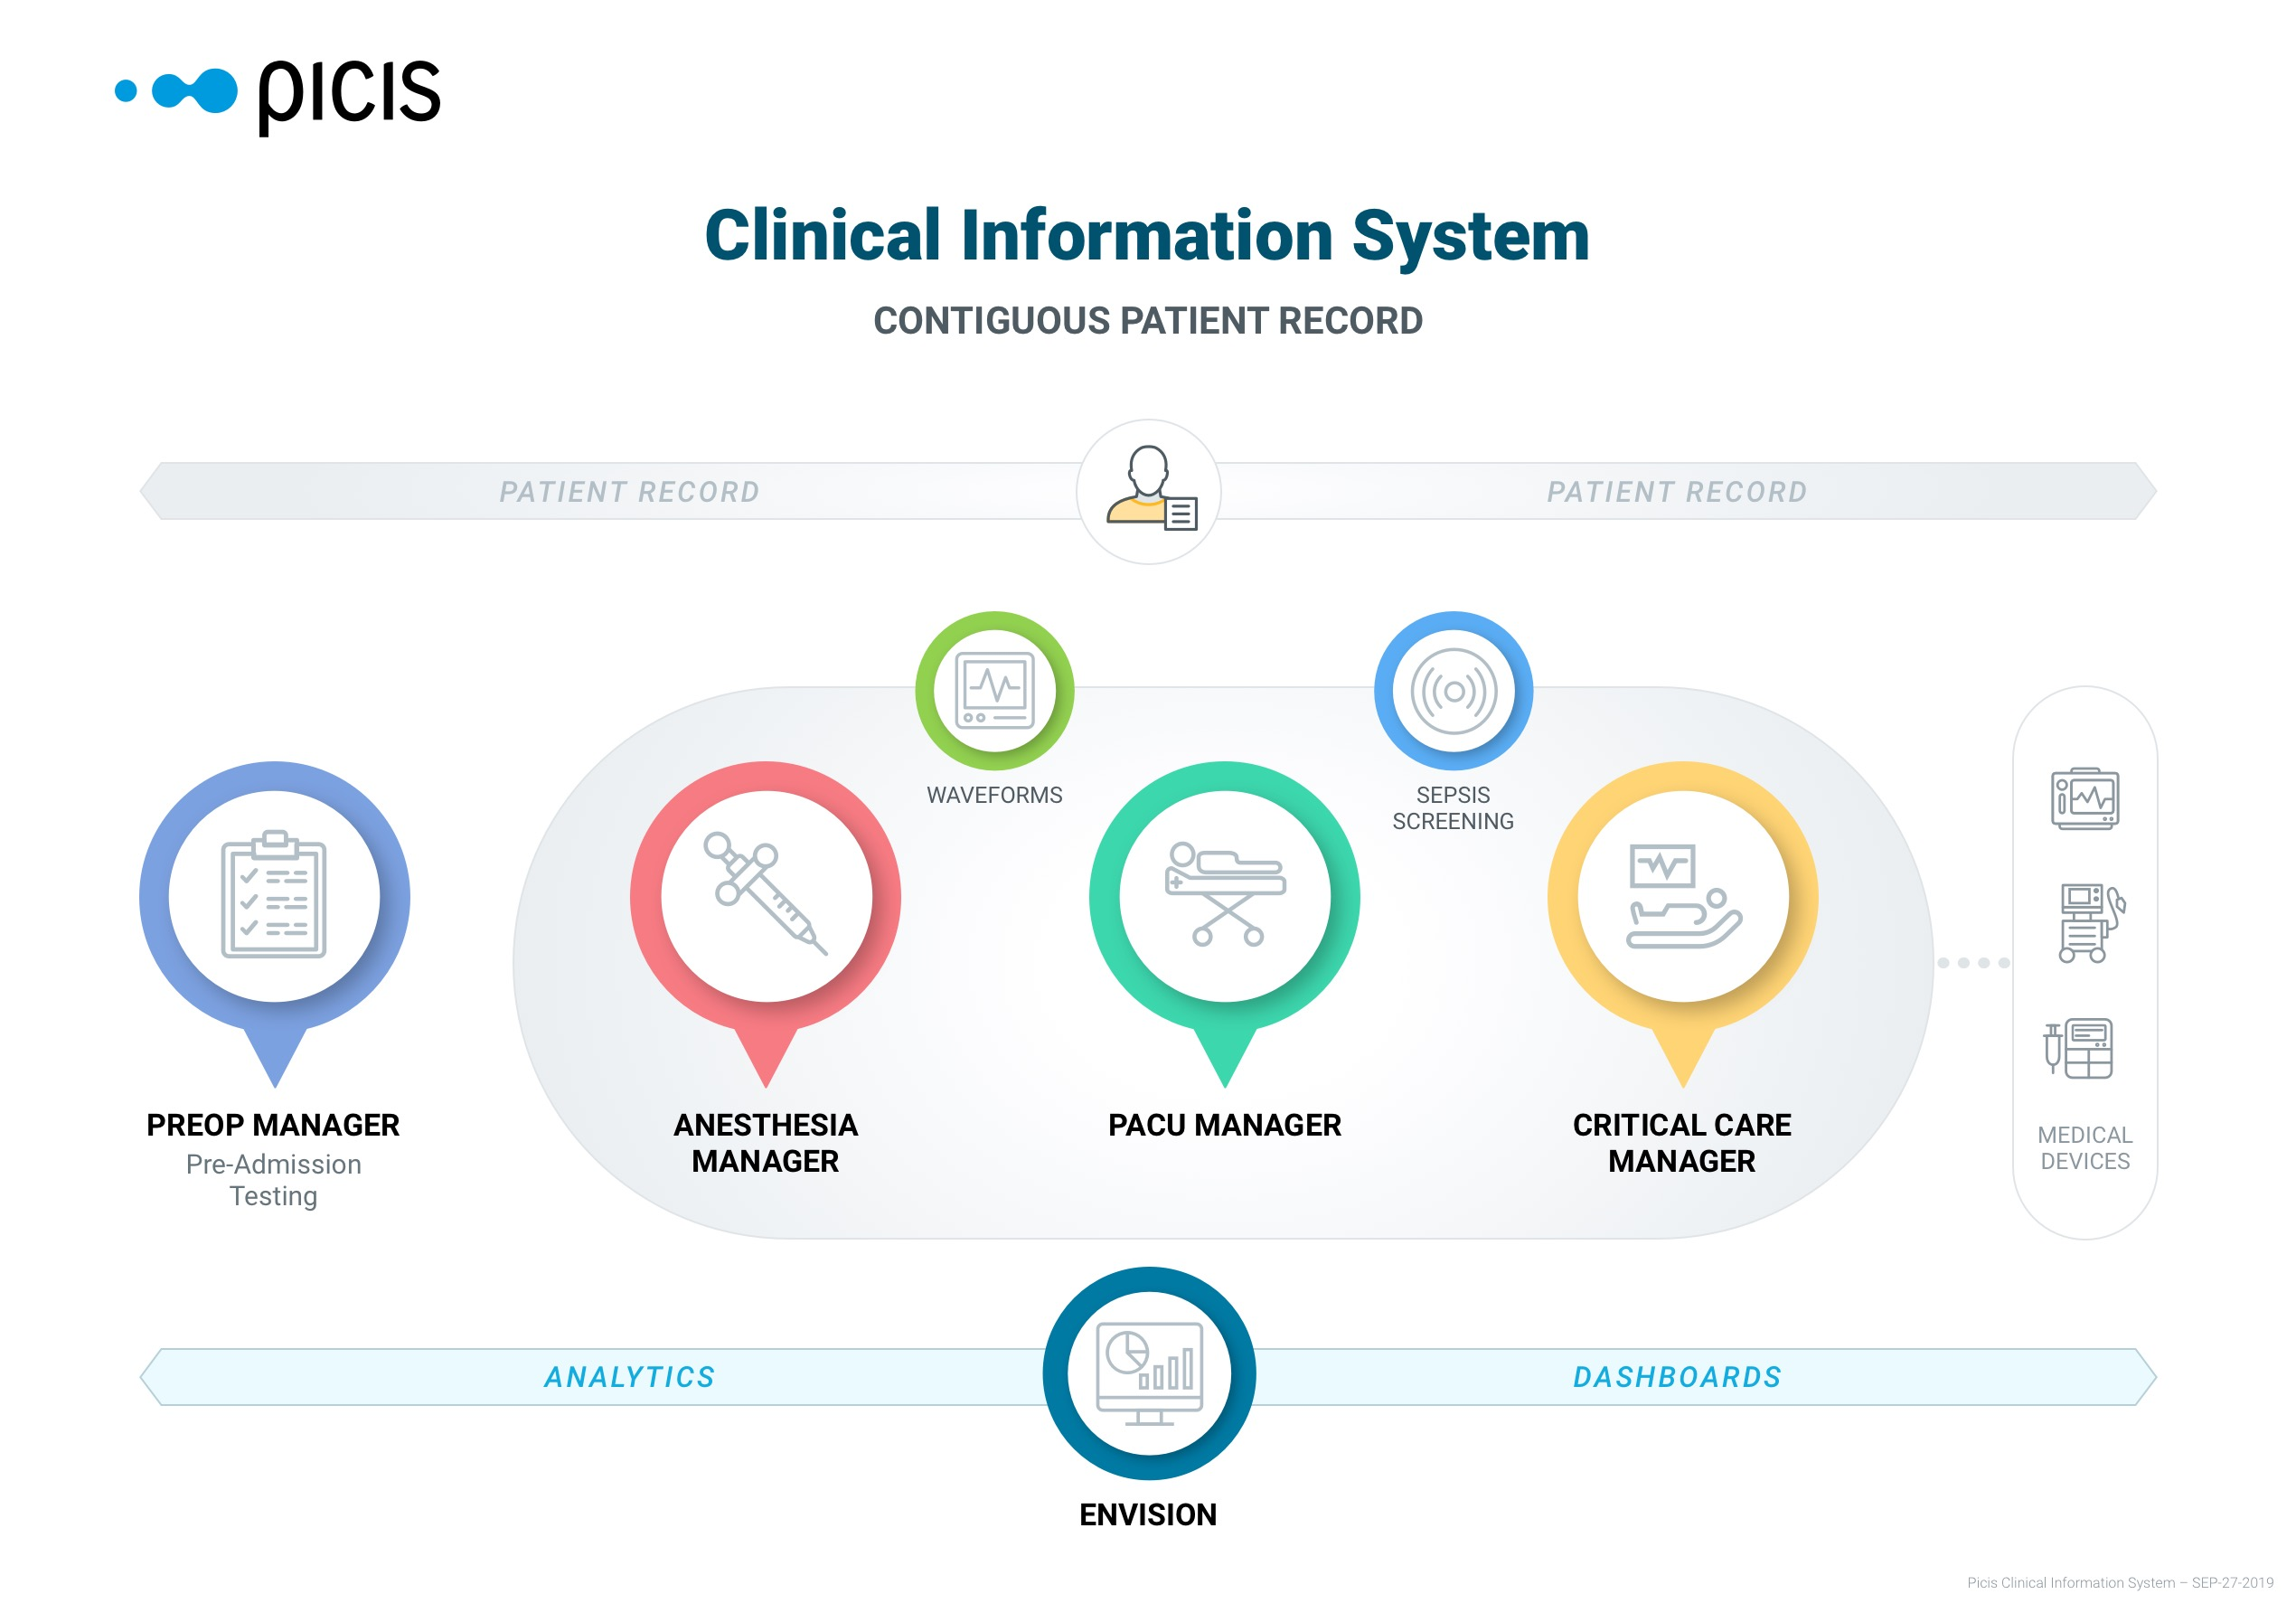 Picis Clinical Information System Graphic